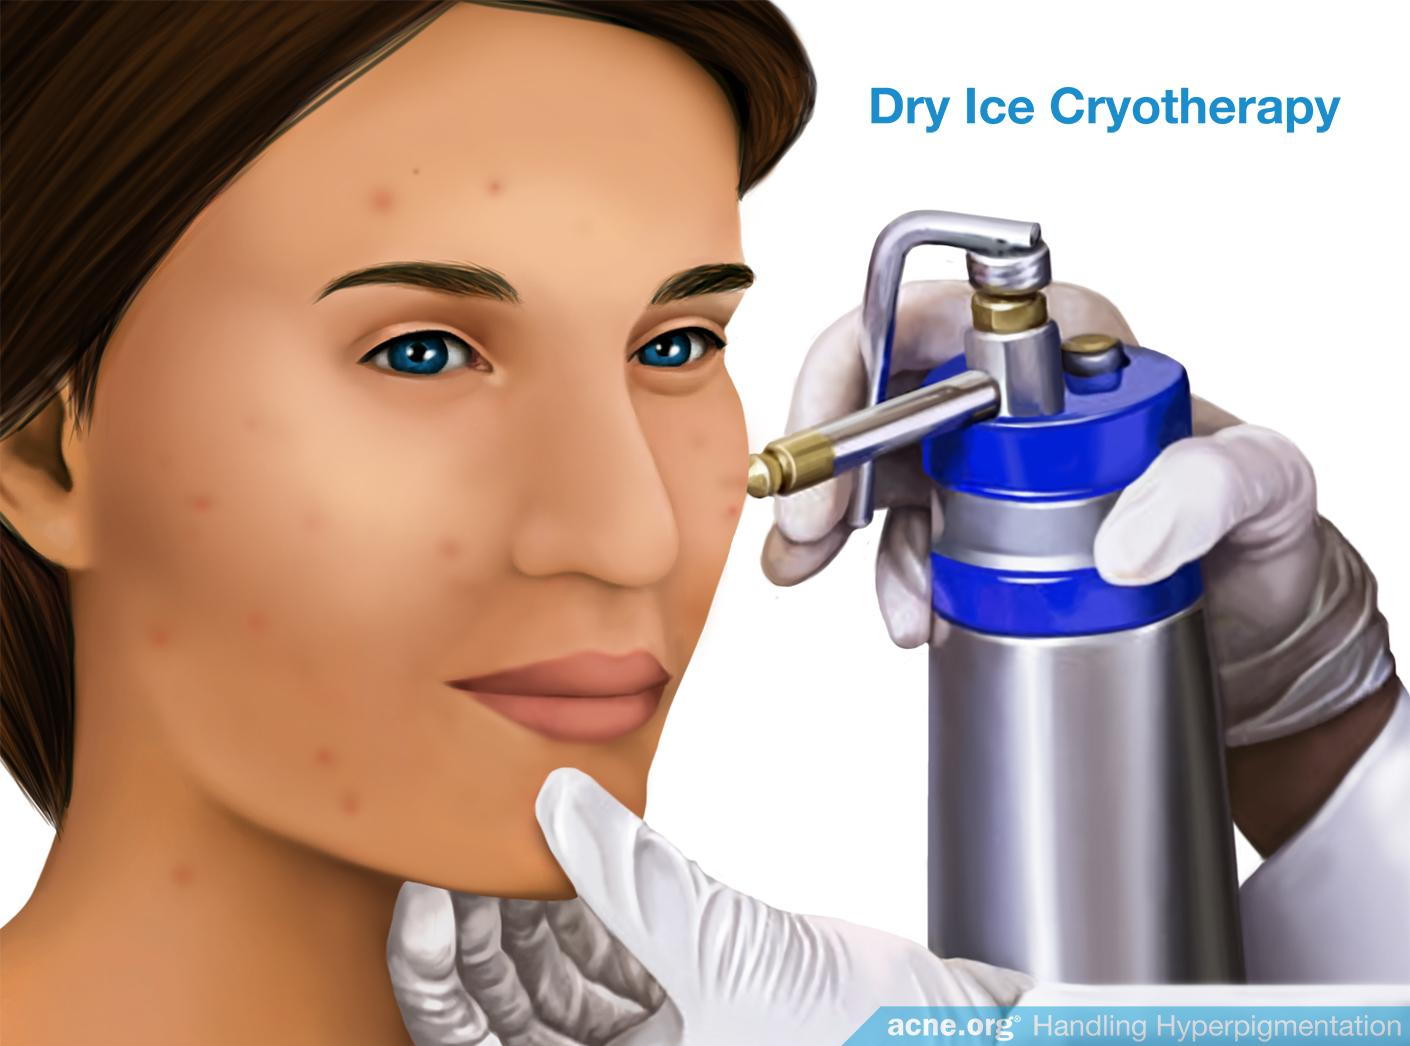 Dry Ice Cryotherapy